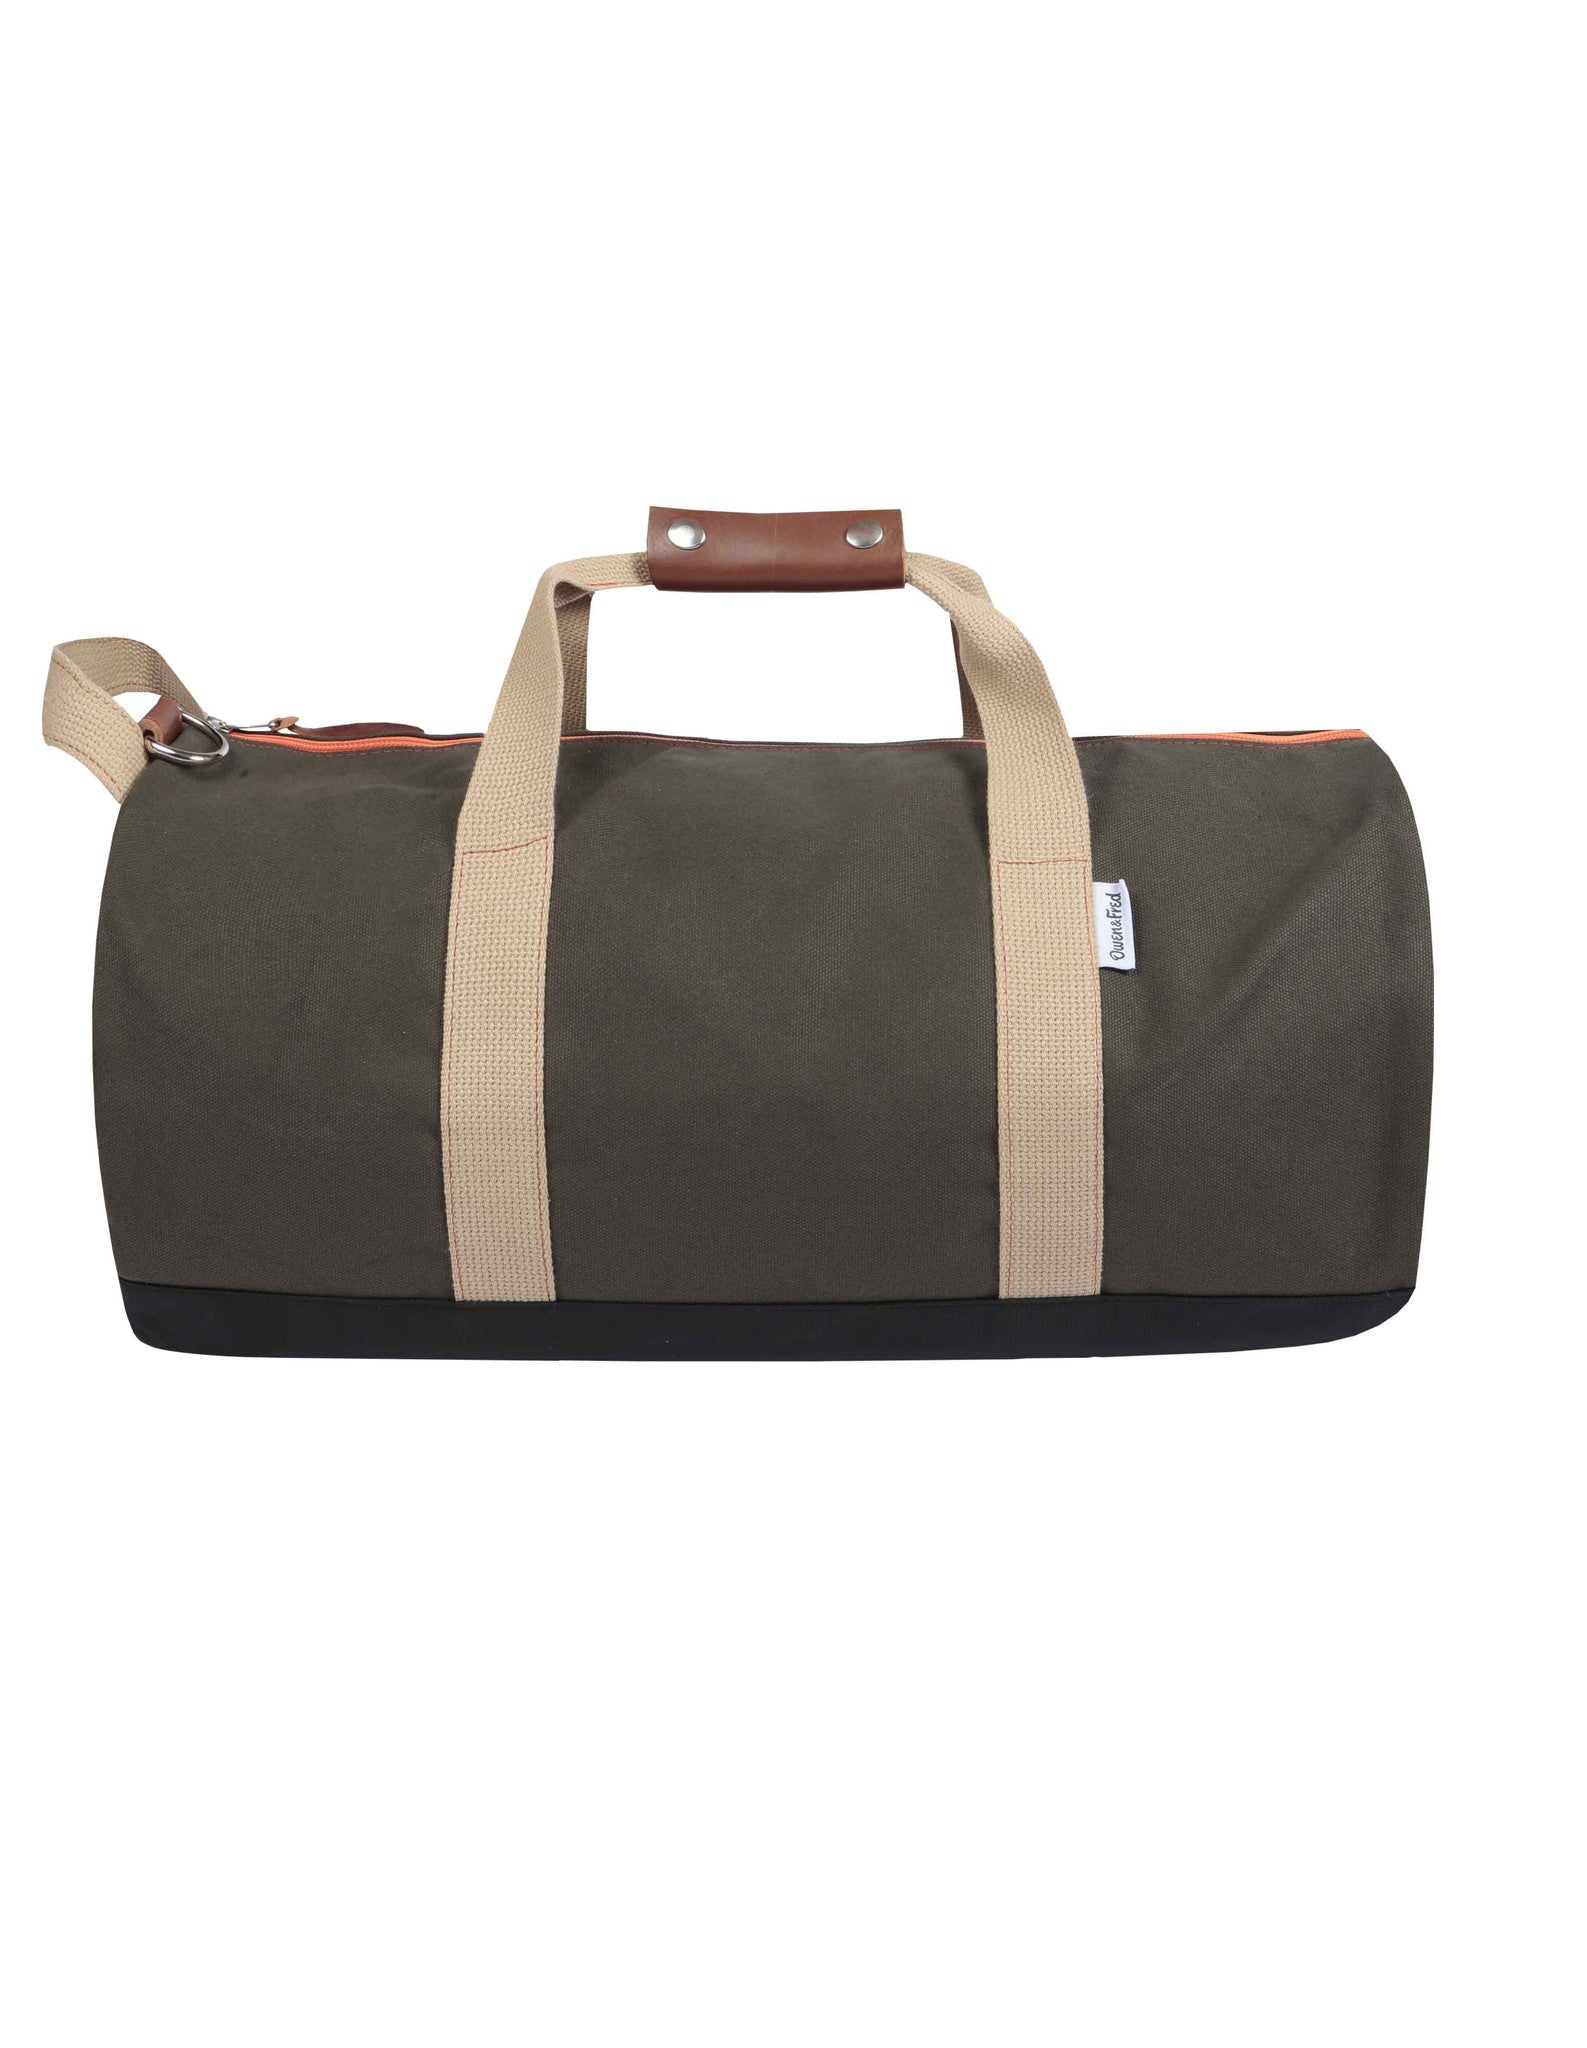 Side of Army Green Work Hard, Play Hard duffel bag by Owen & Fred